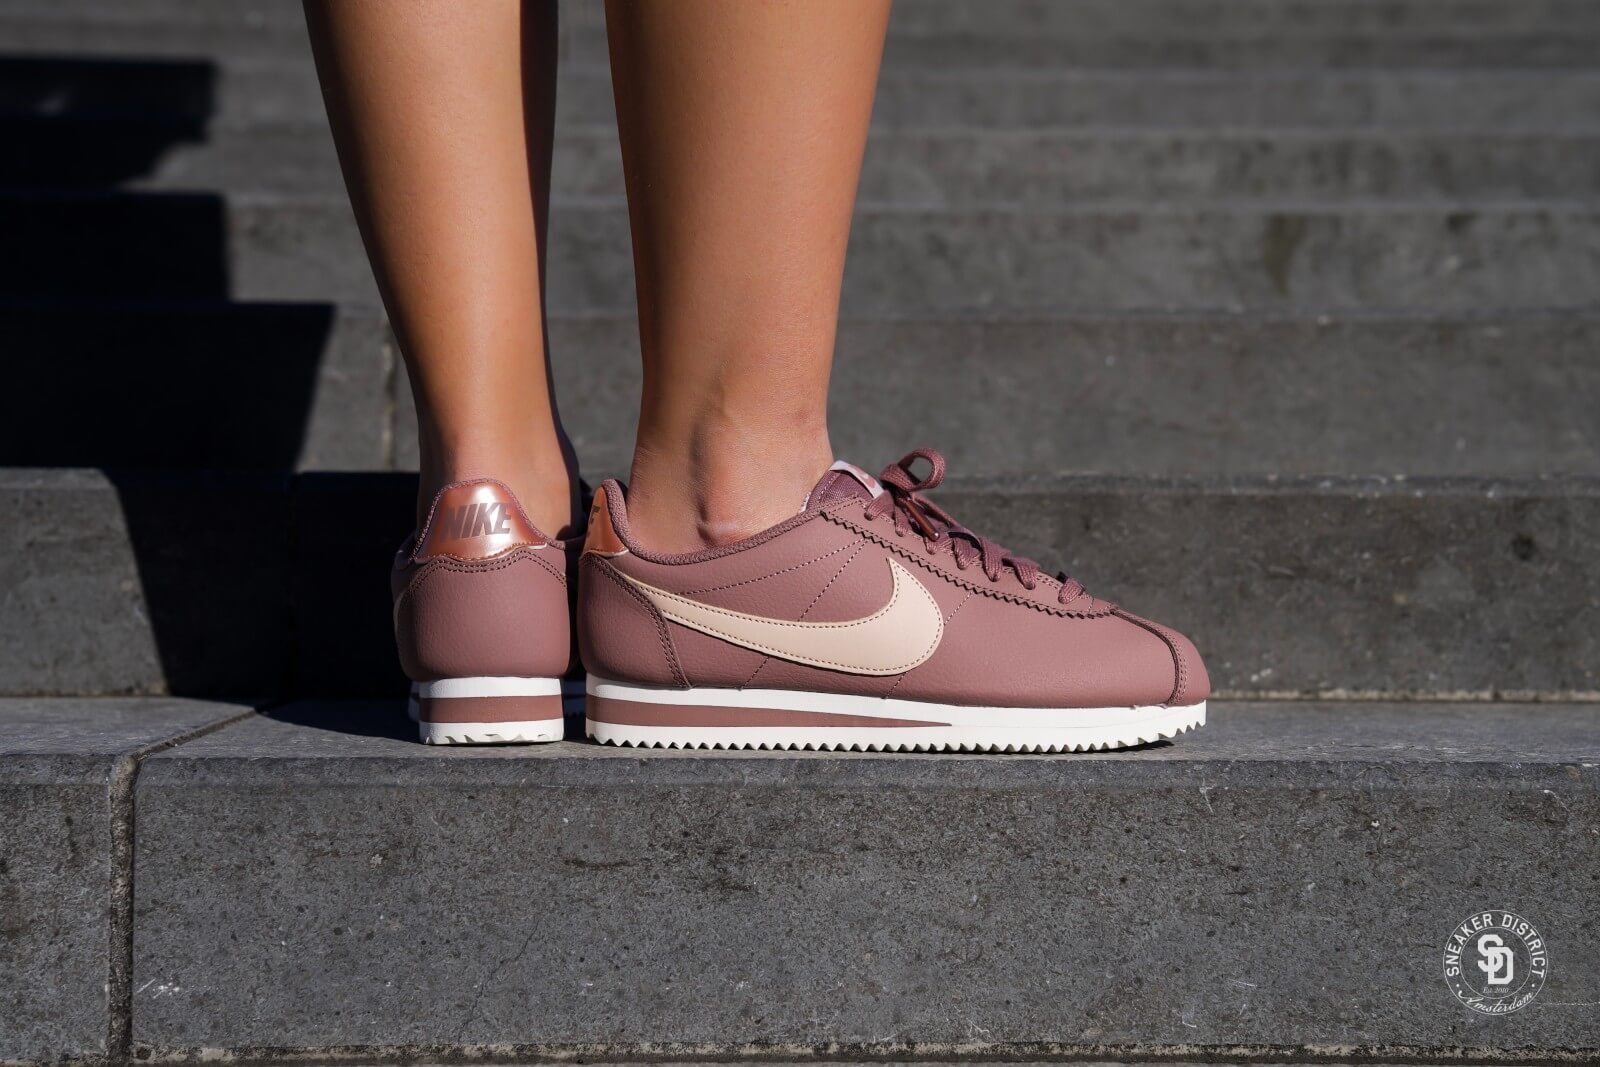 Nike Wmns Classic Cortez Leather (Beige) - Sneakers